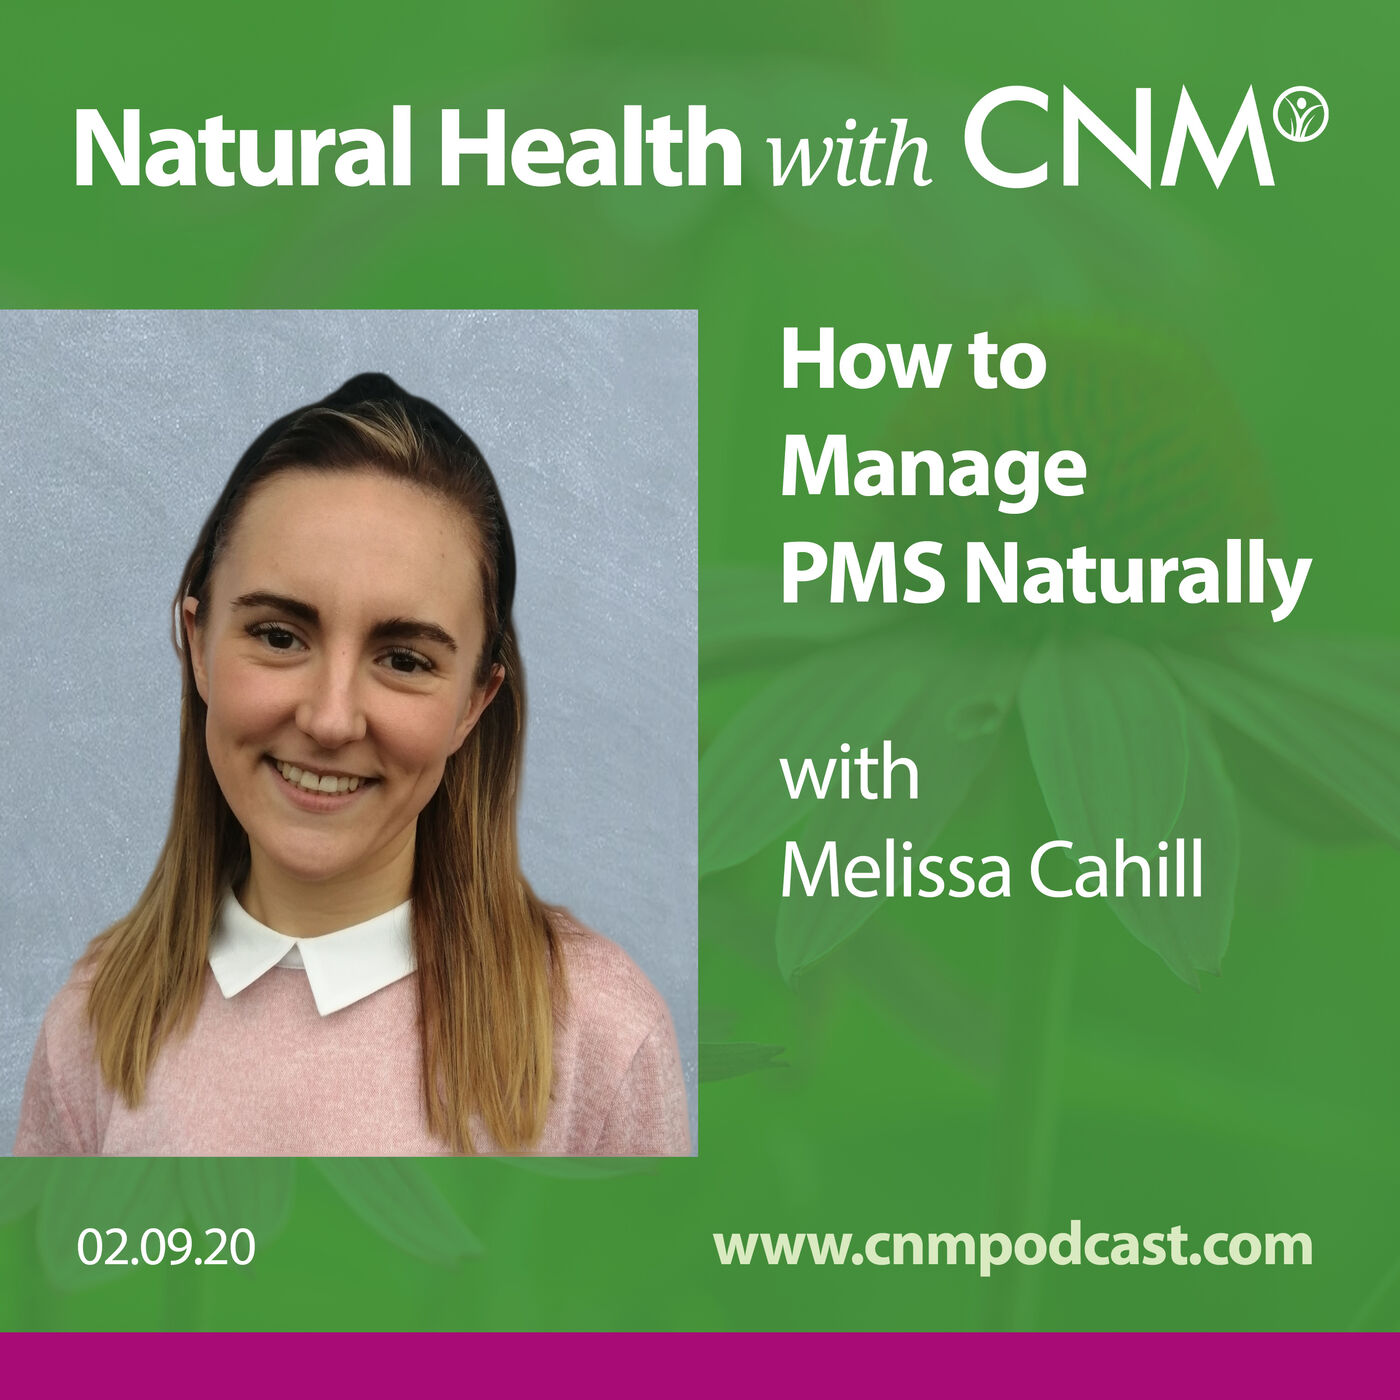 How to Manage PMS Naturally with Melissa Cahill